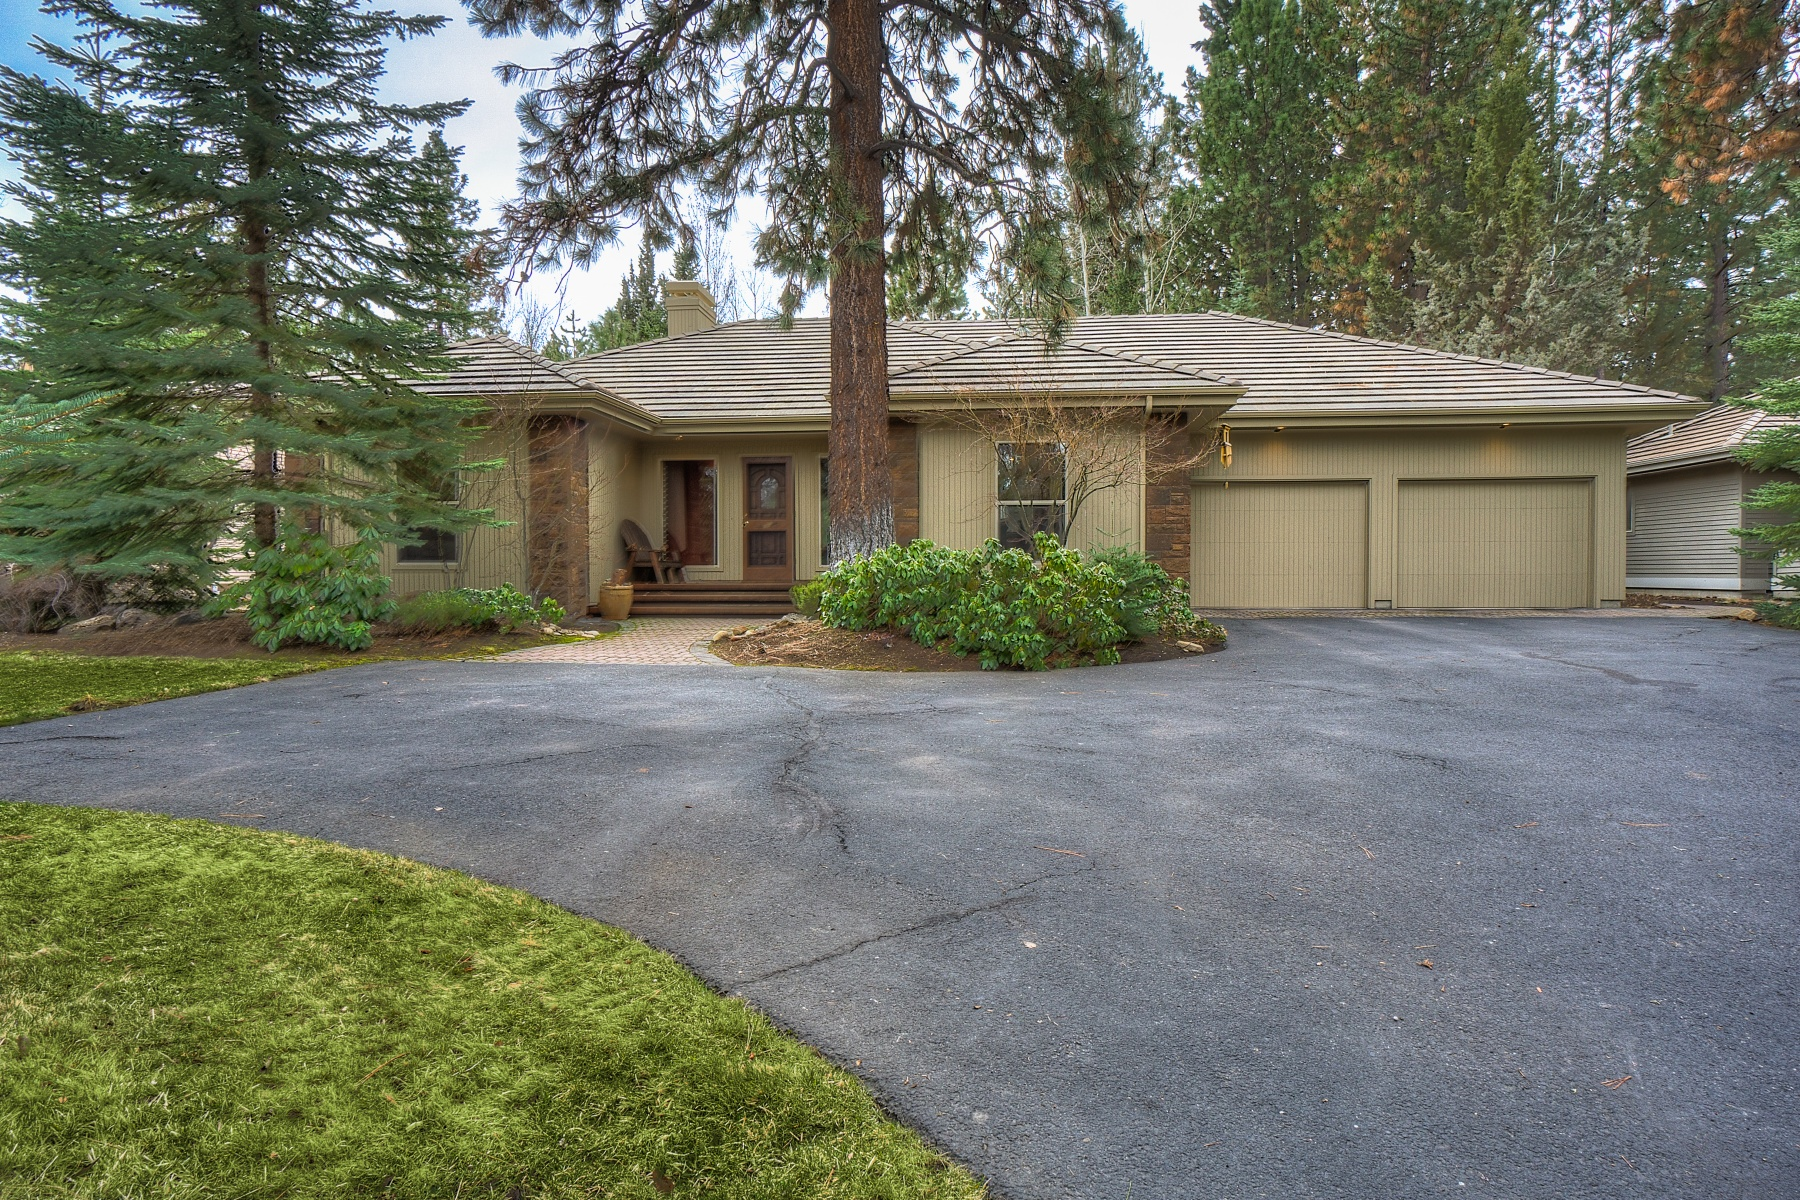 Single Family Home for Sale at Private Setting in Broken Top 19387 Rim Lake Ct Bend, Oregon, 97702 United States